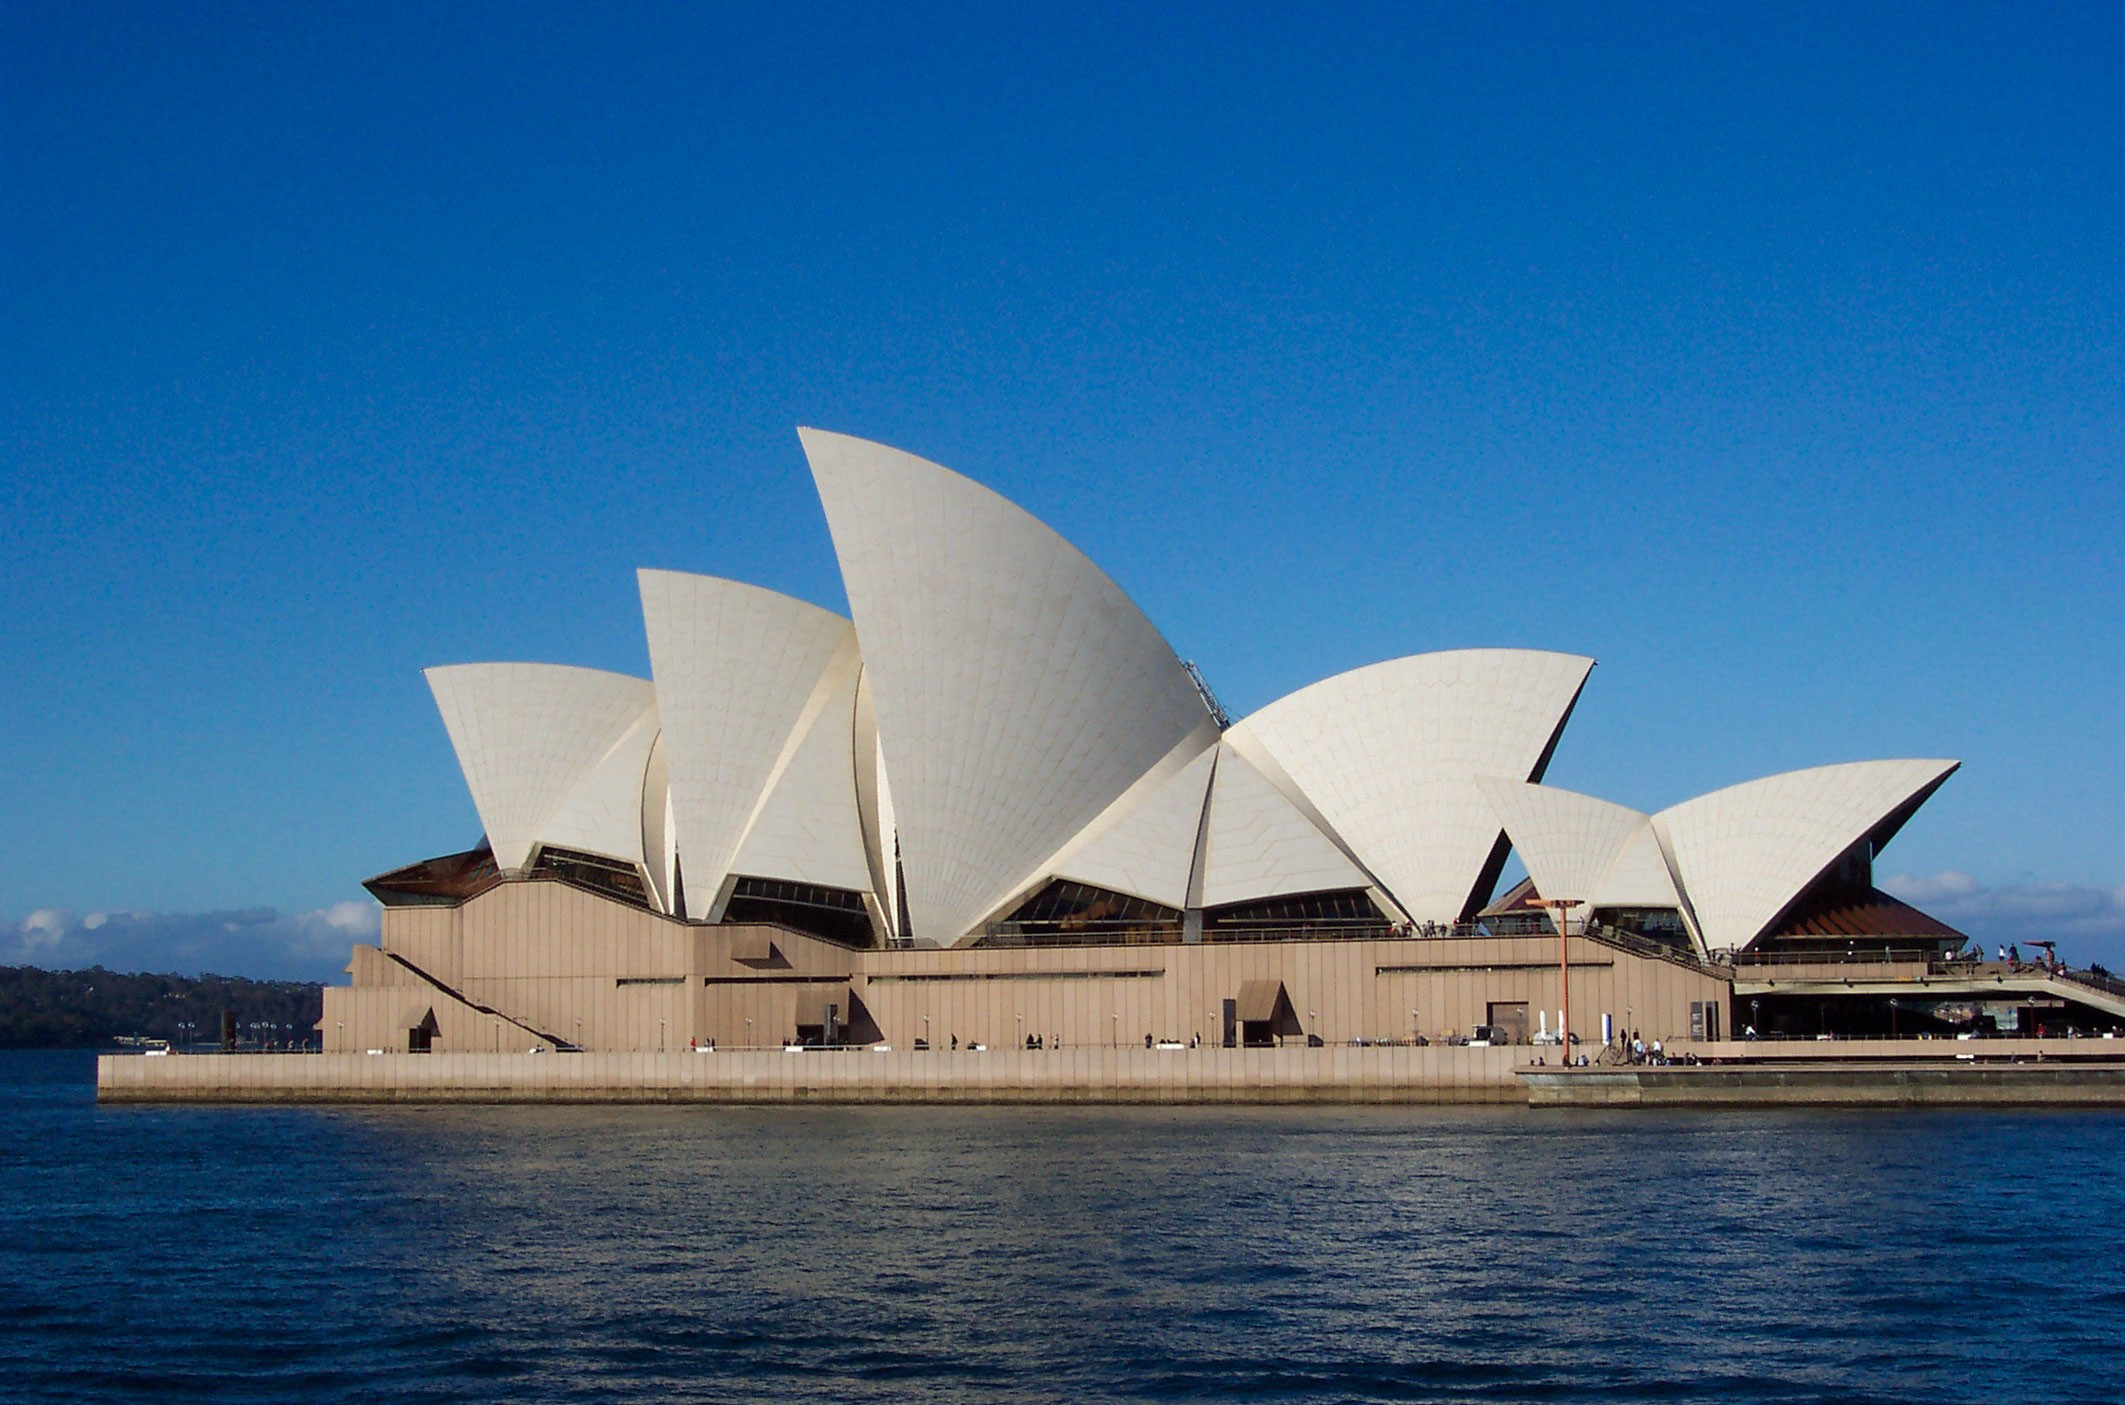 Design lessons from the Sydney Opera House  by Marie-Claire Dean